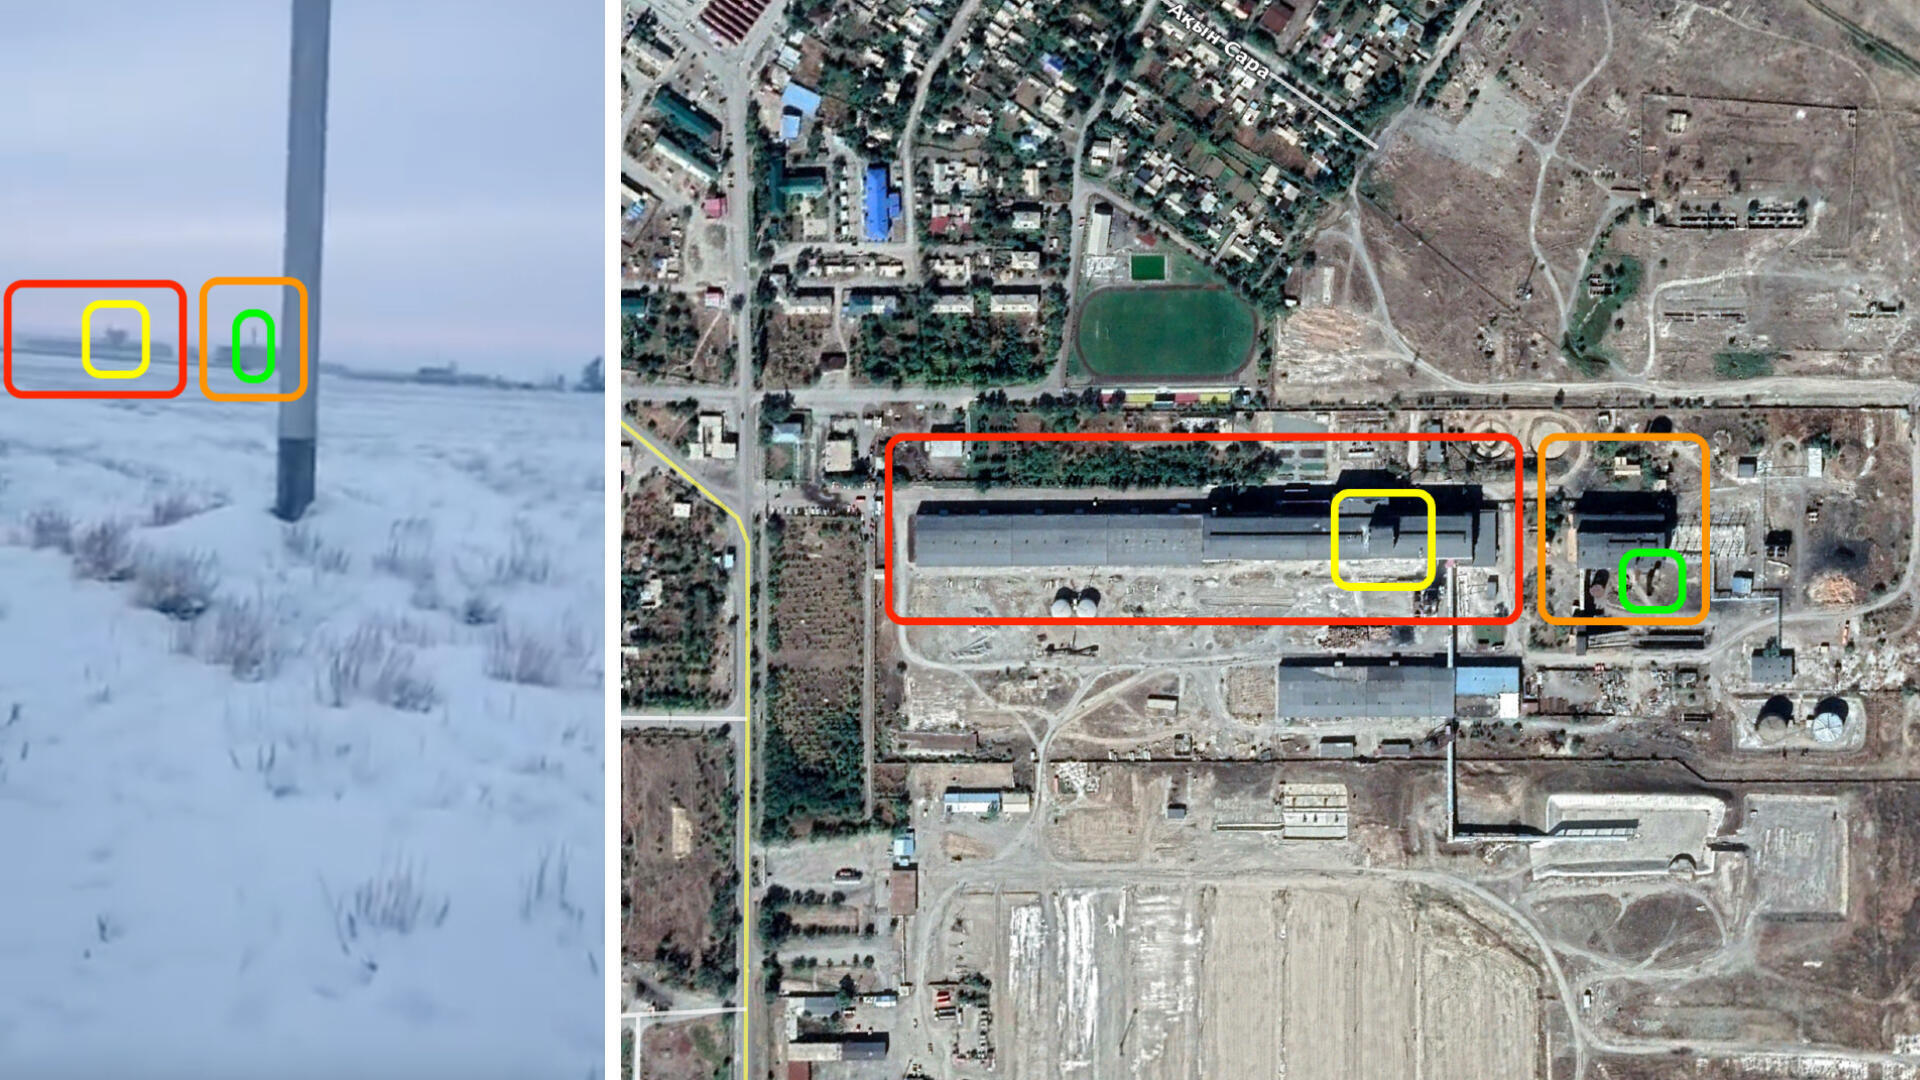 Screenshot of the video (left) and satellite imagery of the factory (right)